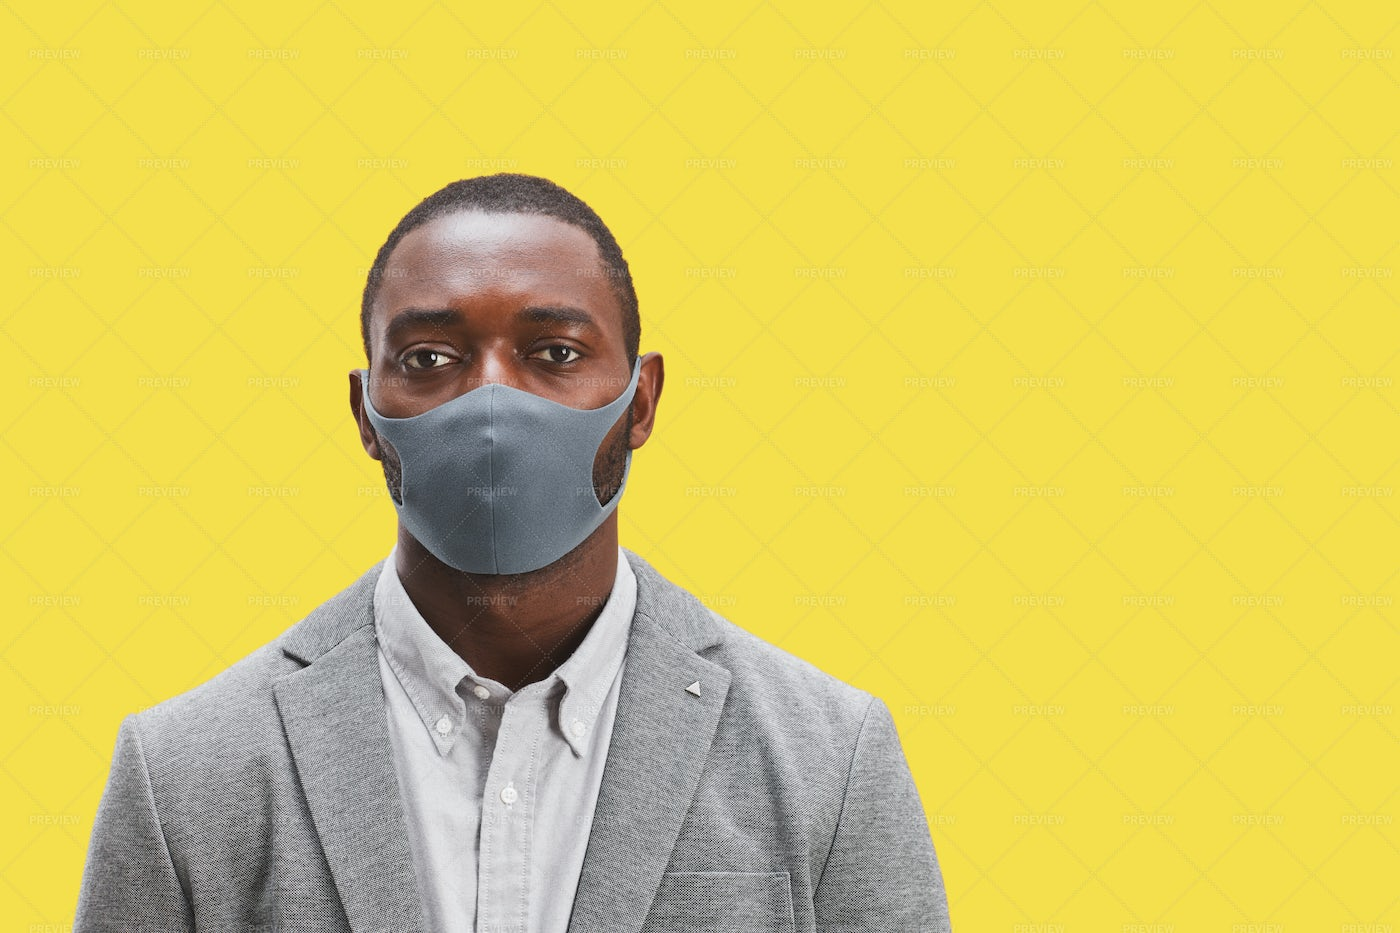 Manager Wearing Mask On Yellow: Stock Photos